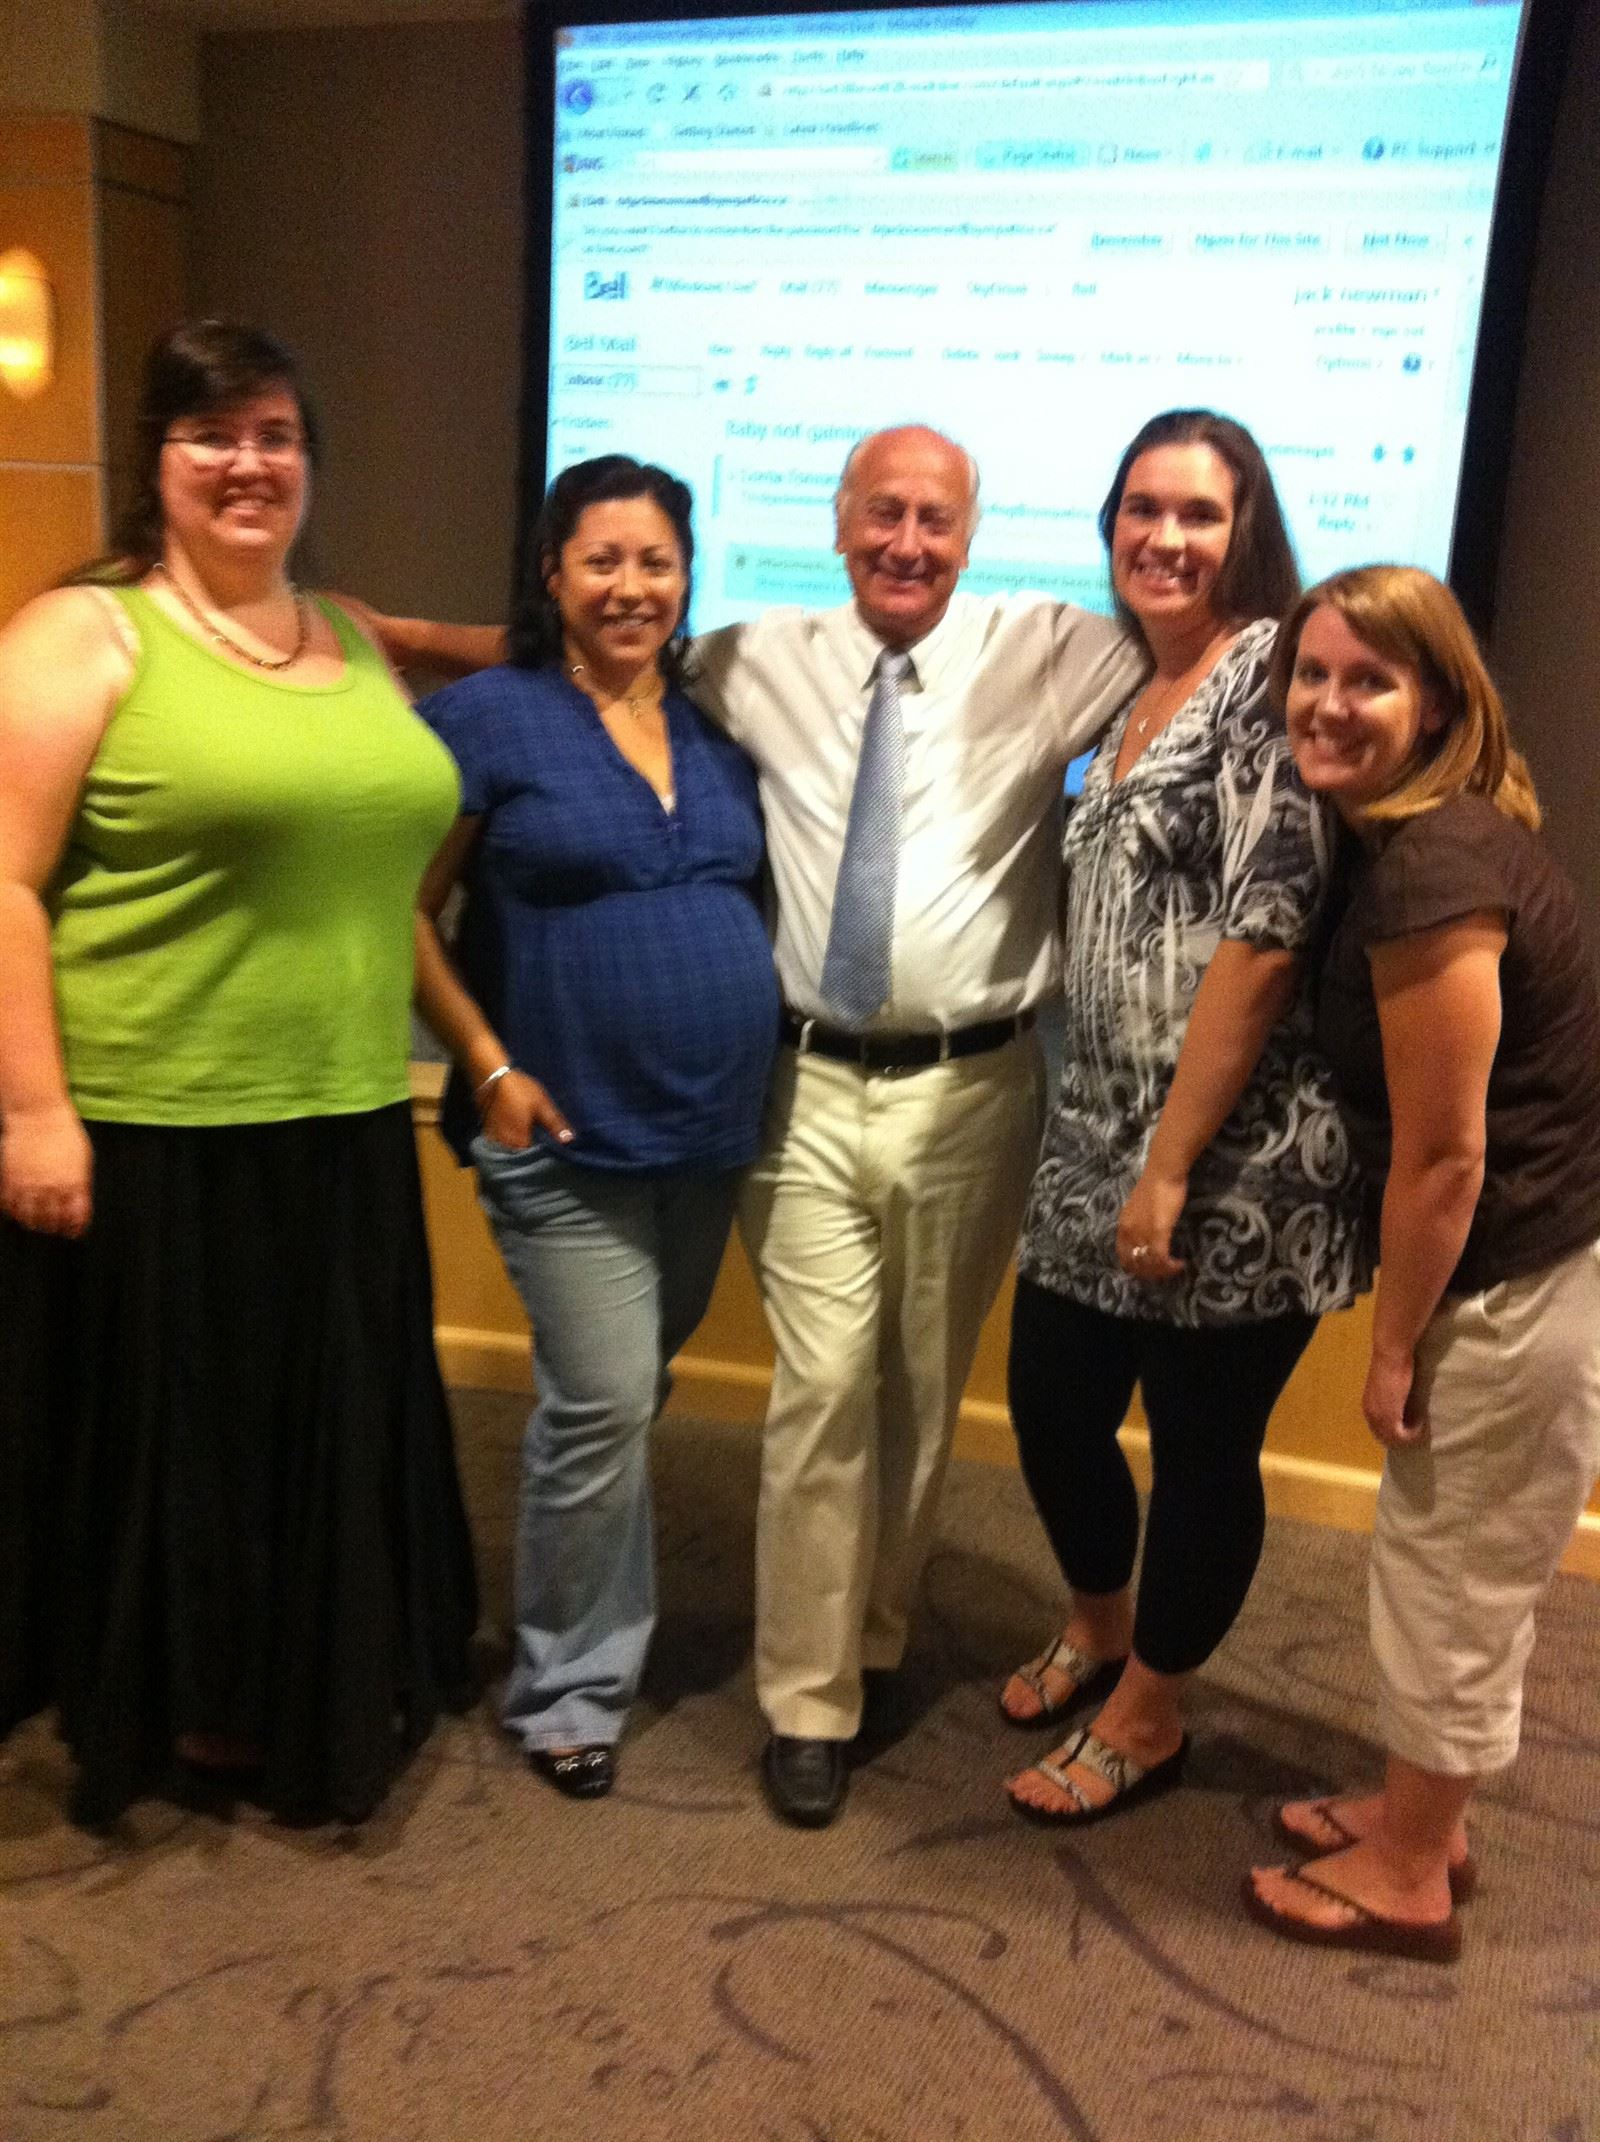 Dr. Jack Newman : Four instructors who teach The Bradley Method® got to attend his seminar in Mesa, AZ.